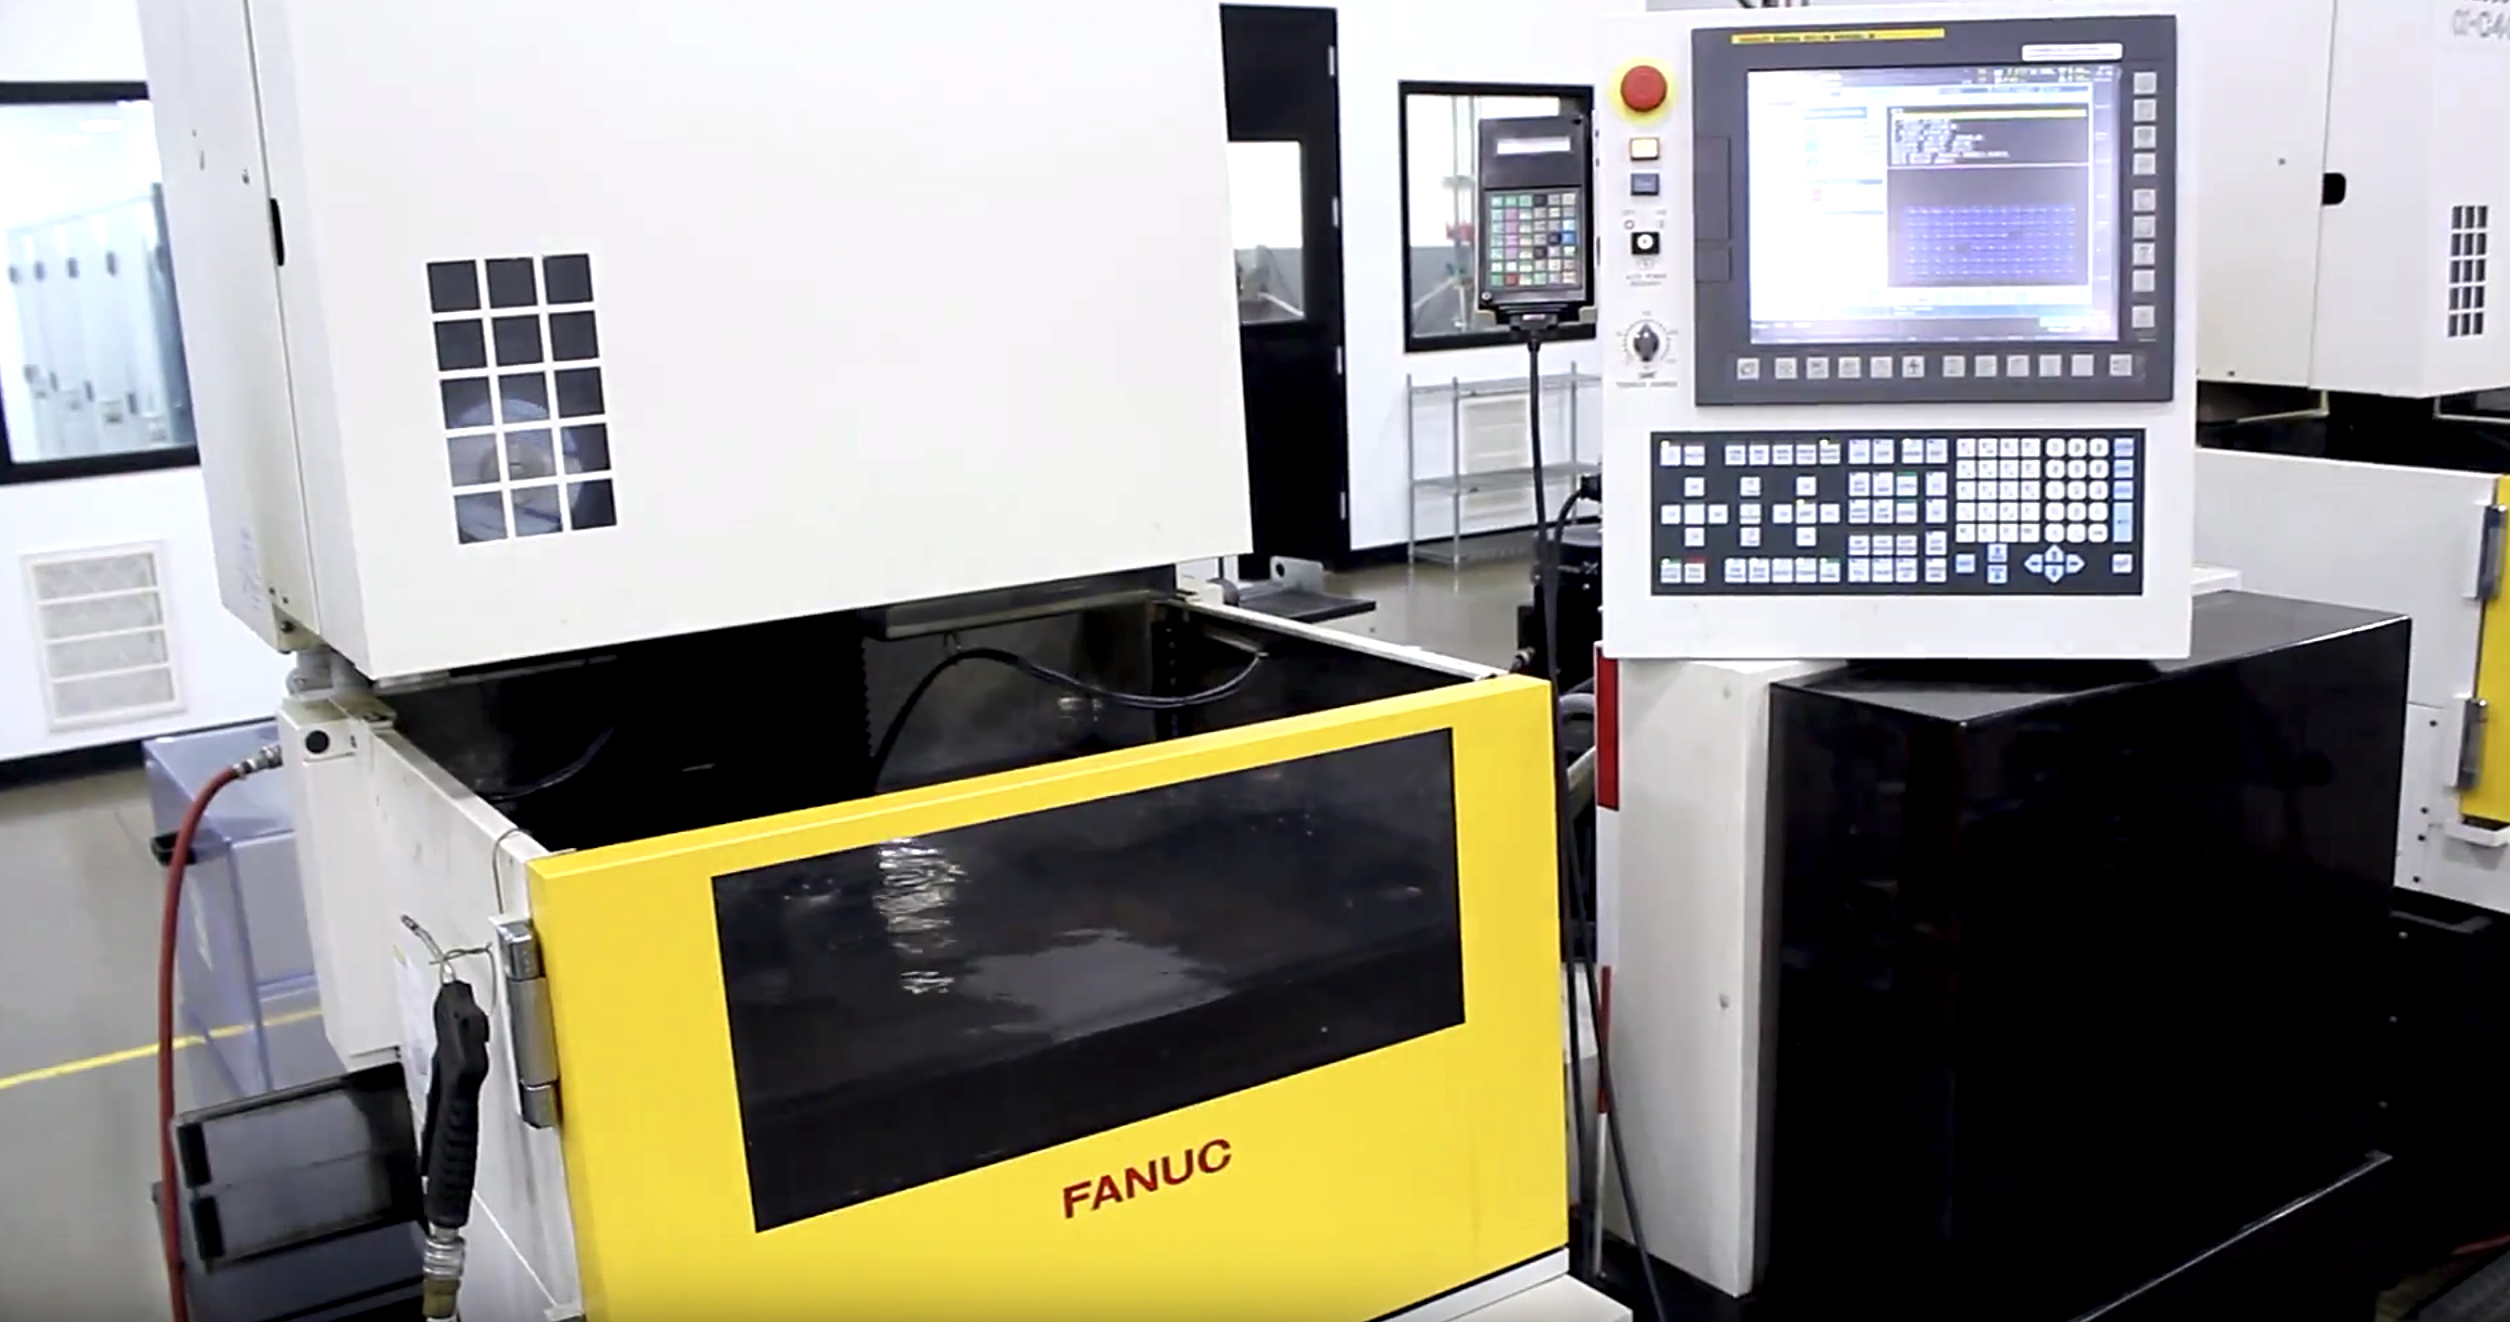 Ram Edm Process Ram Edm Machines Poco Edm Technical